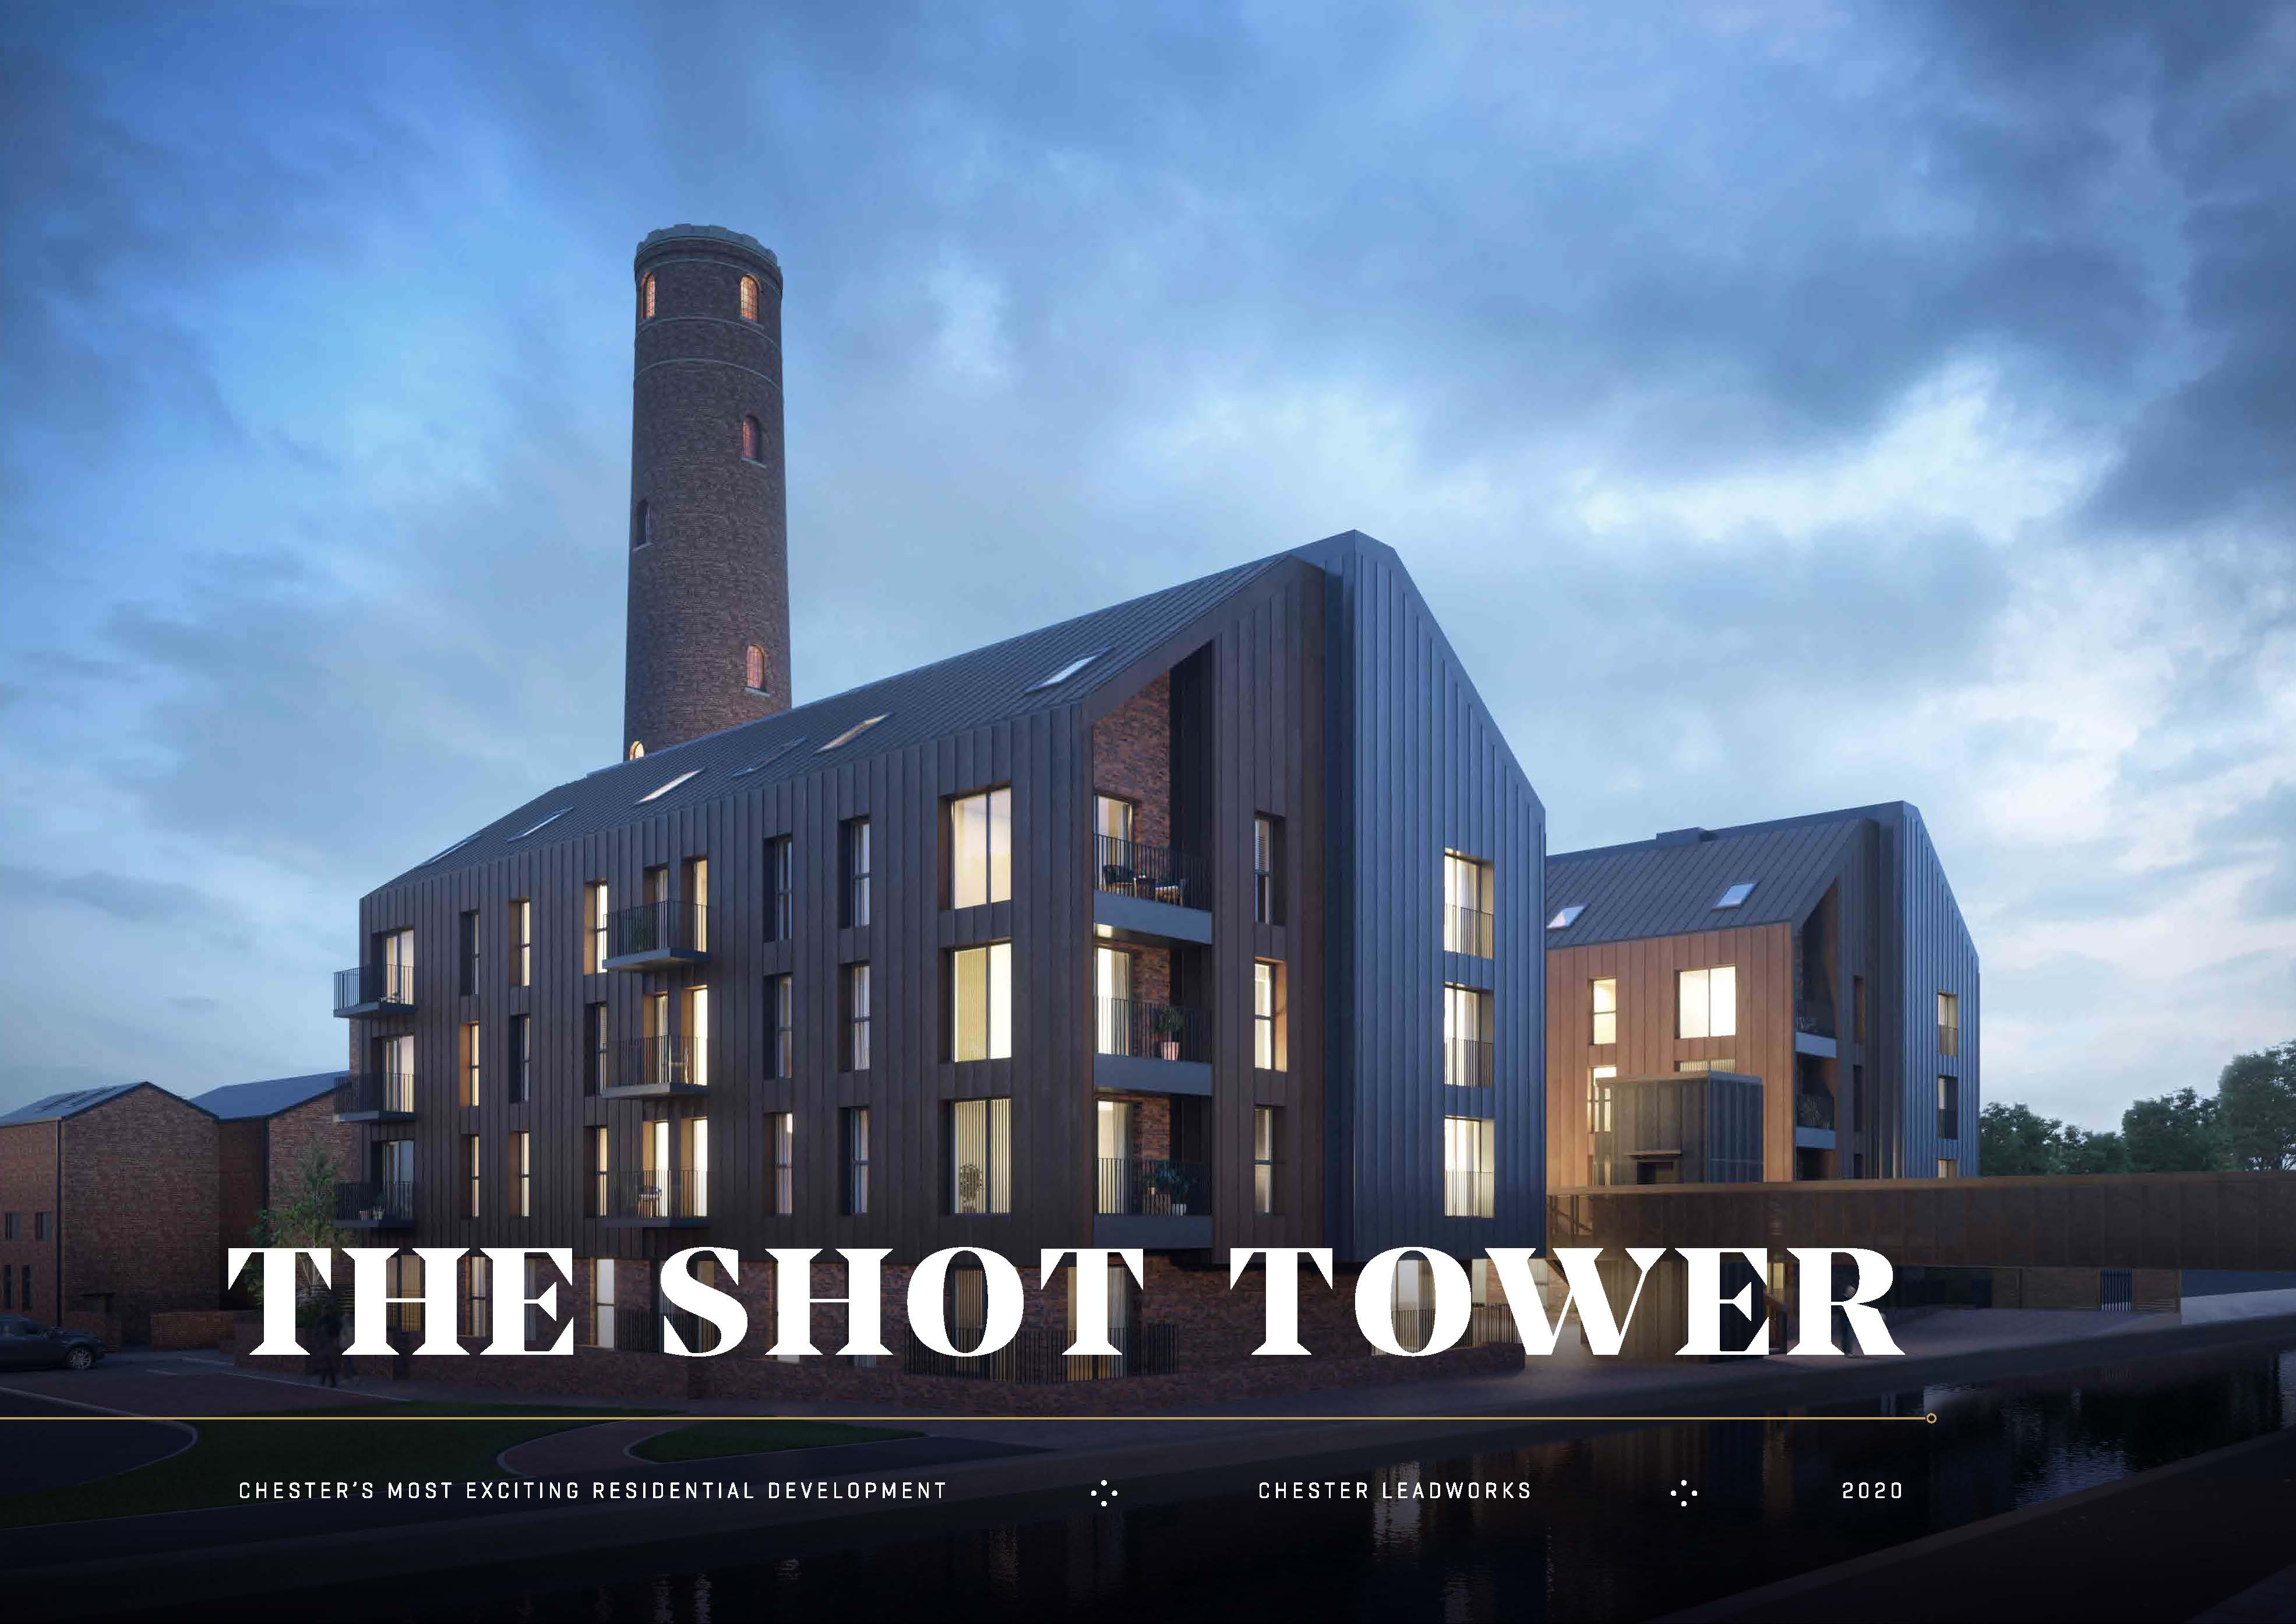 Pages from Shot Tower Brochure 2020